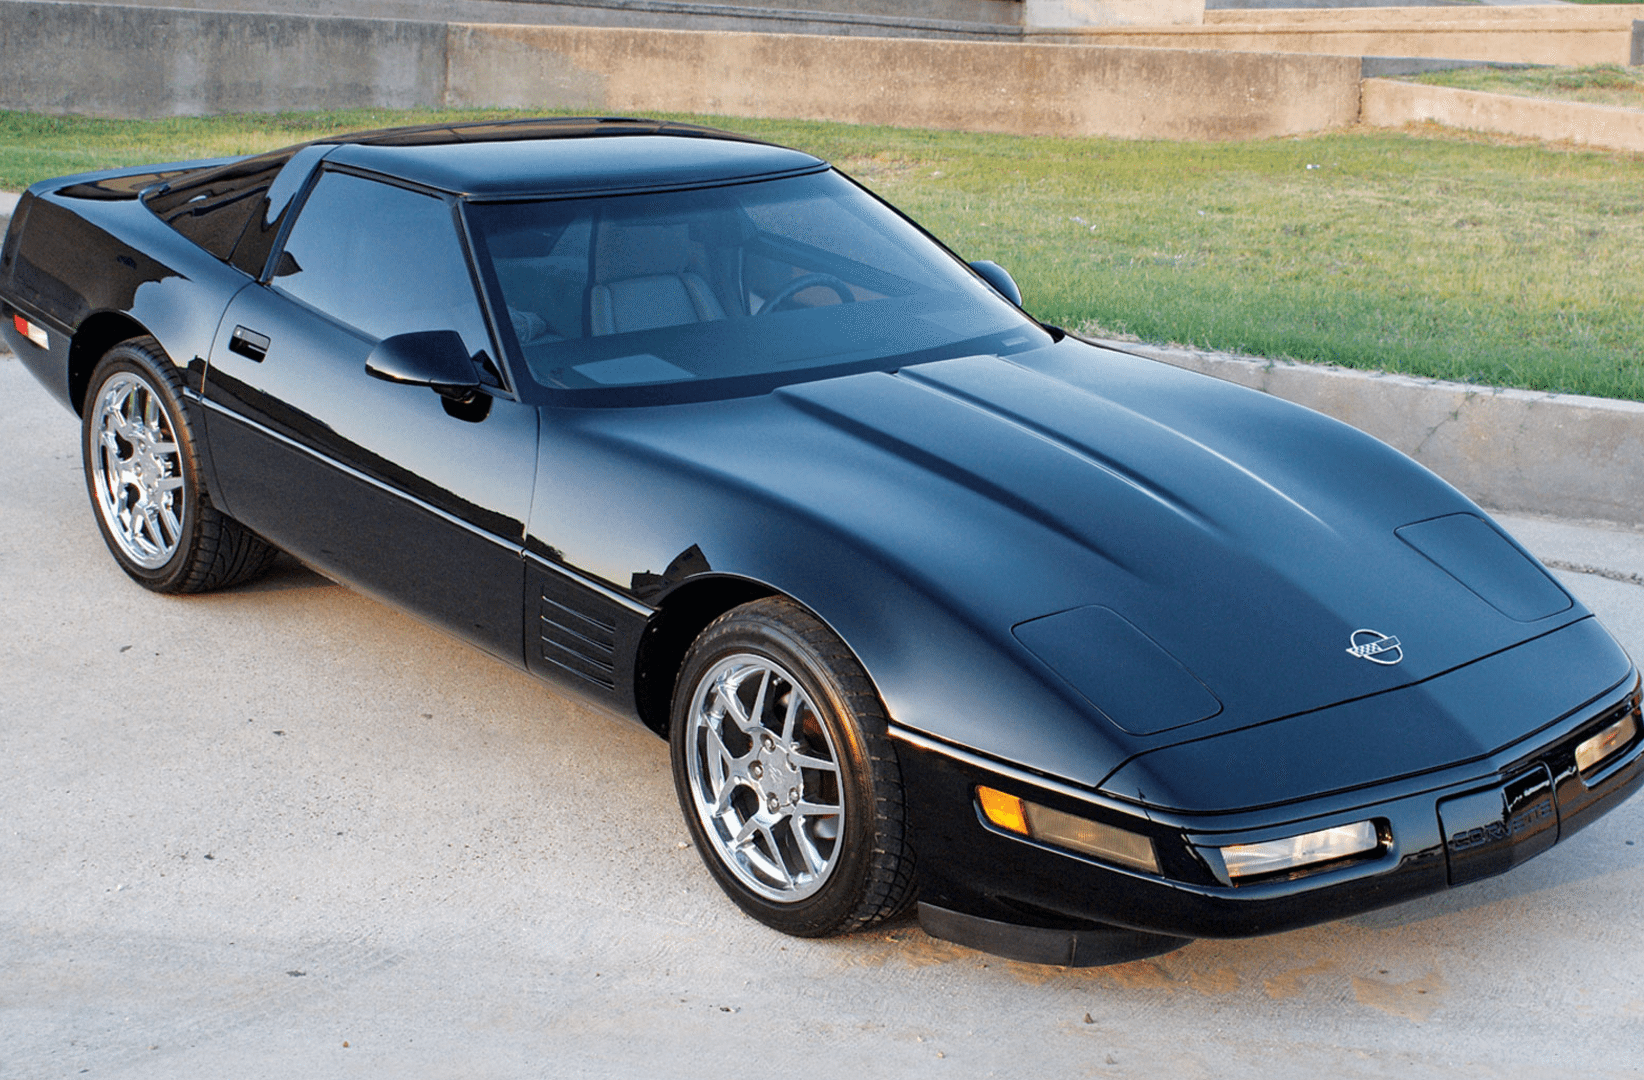 1985 c4 corvette ultimate guide overview specs vin info performance more. Black Bedroom Furniture Sets. Home Design Ideas